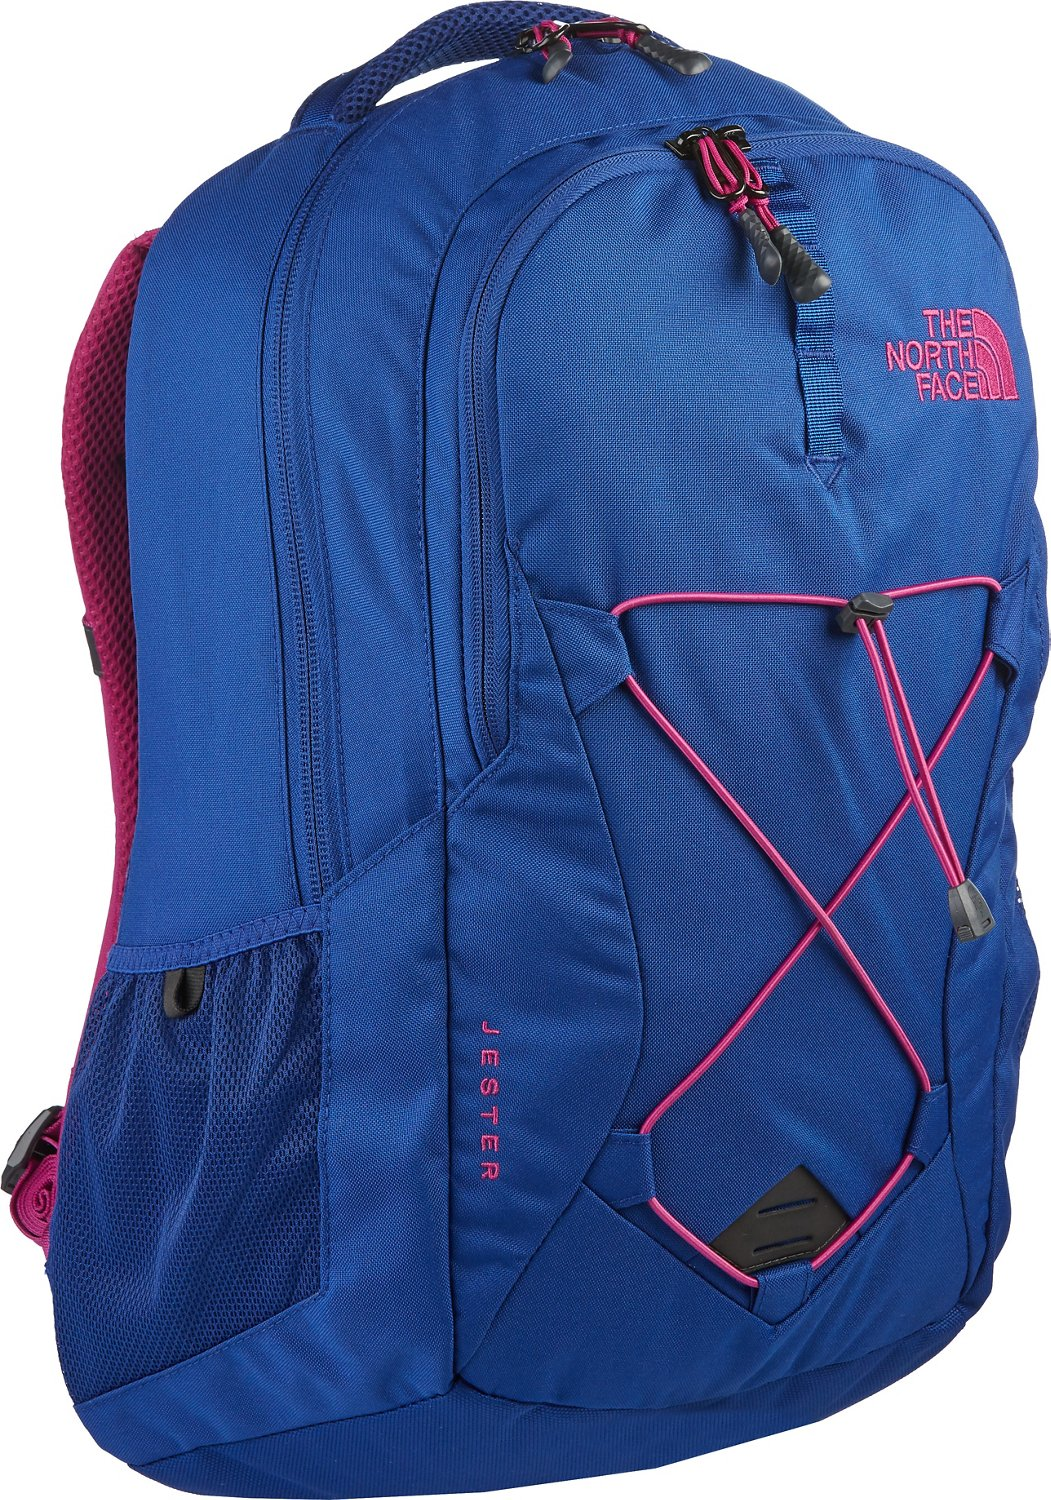 Display product reviews for The North Face Jester Backpack abb7a9d92f